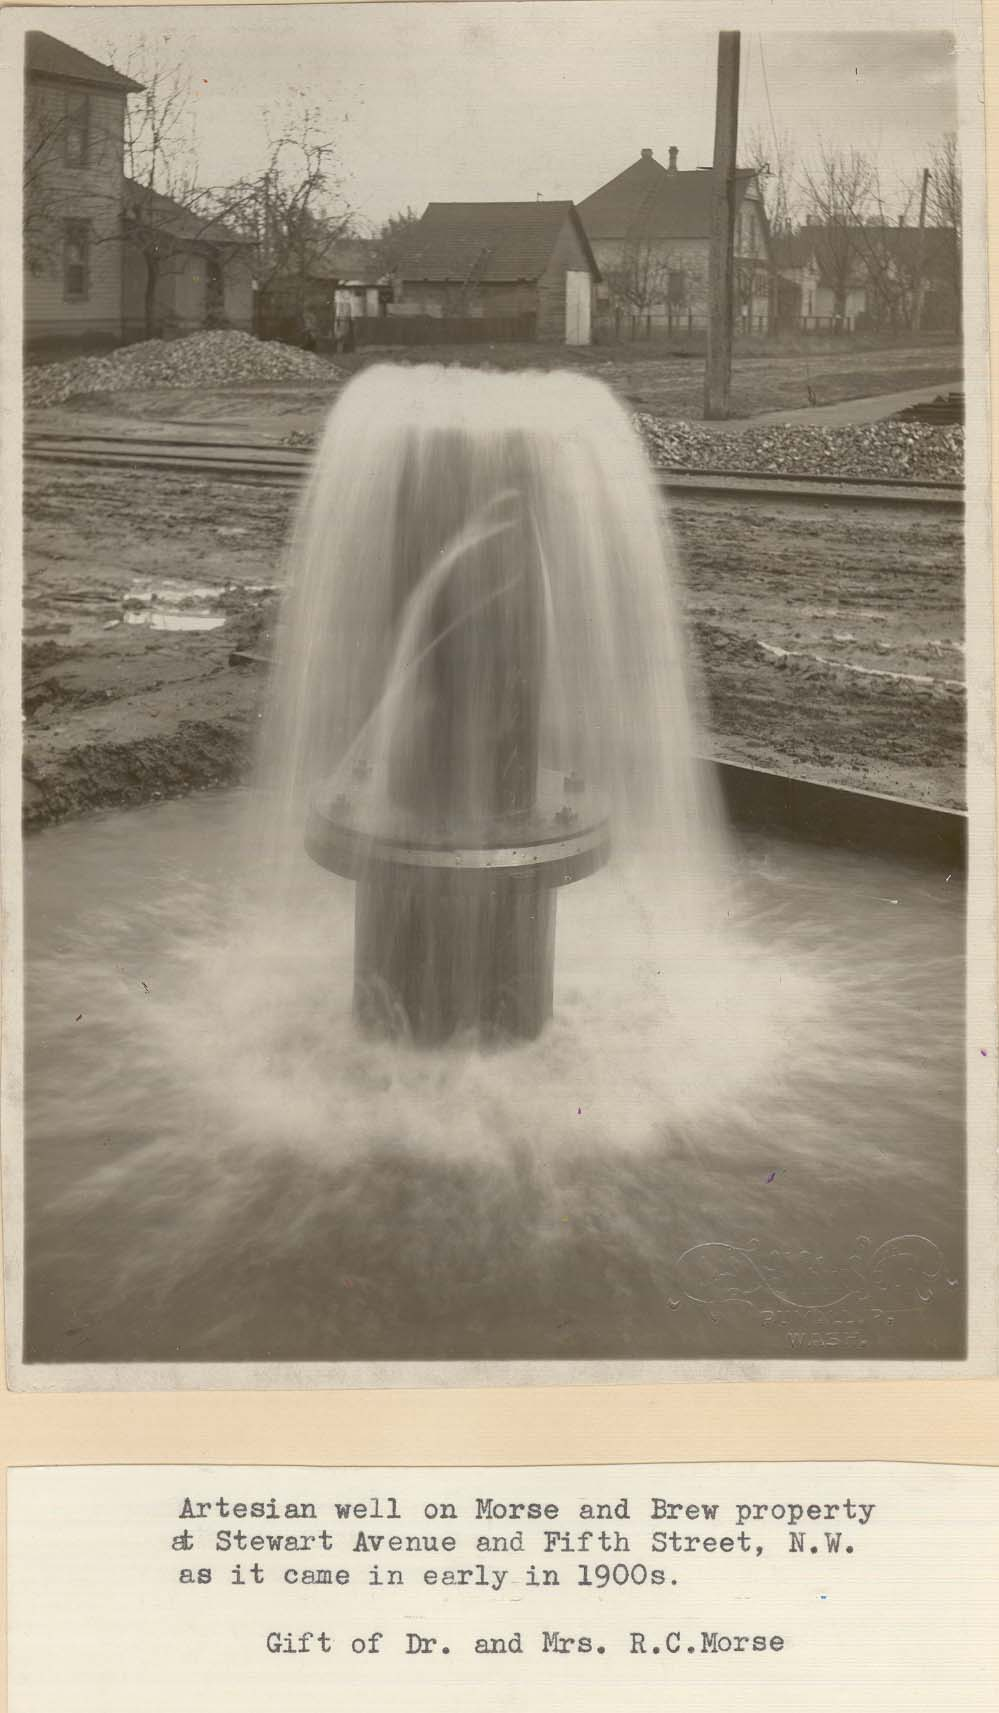 Artesian well historic pic Stewart and 5th early 1900s